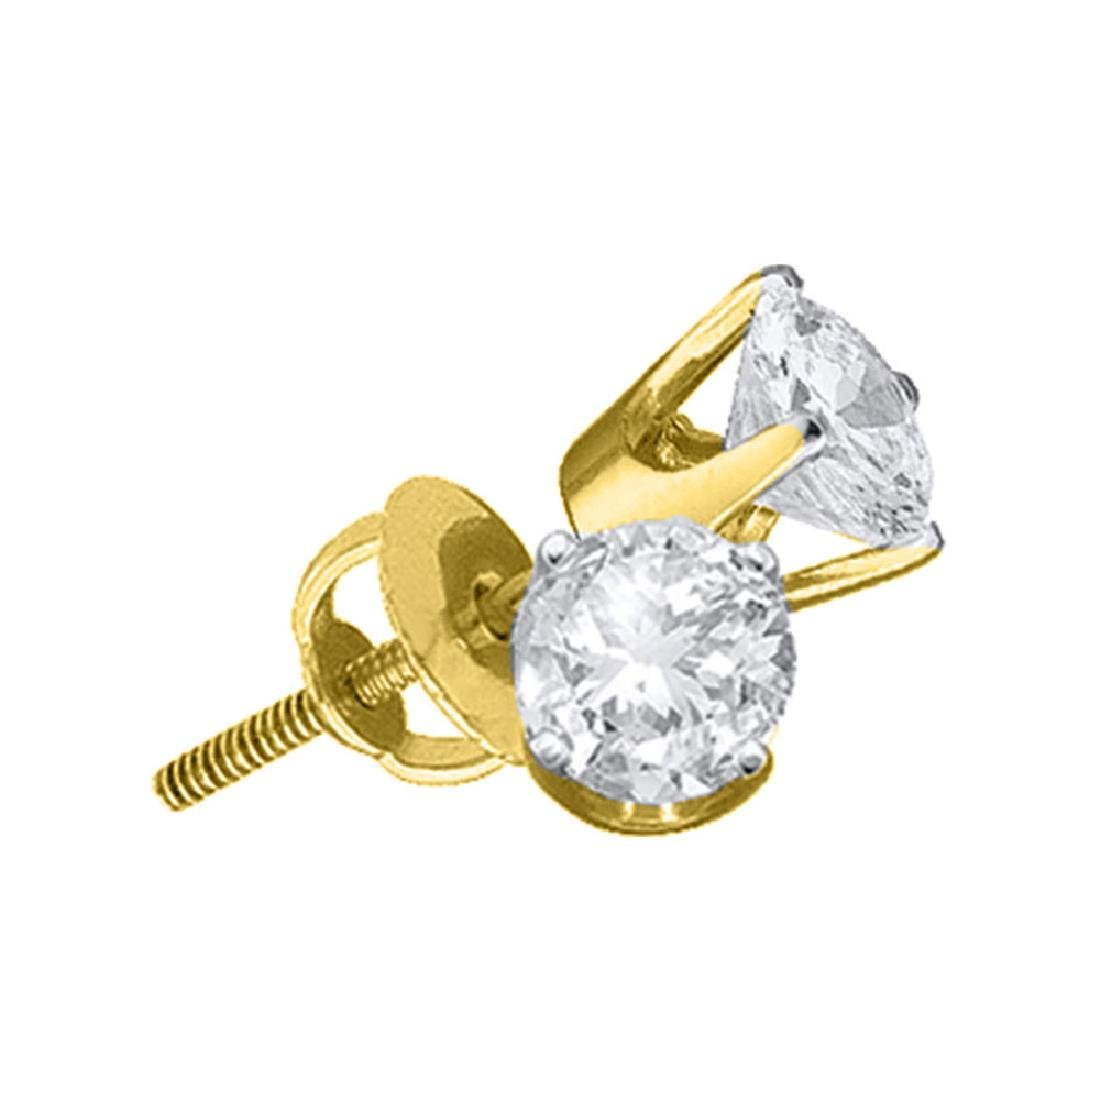 0.62 CTW Diamond Solitaire Stud Earrings 14KT Yellow